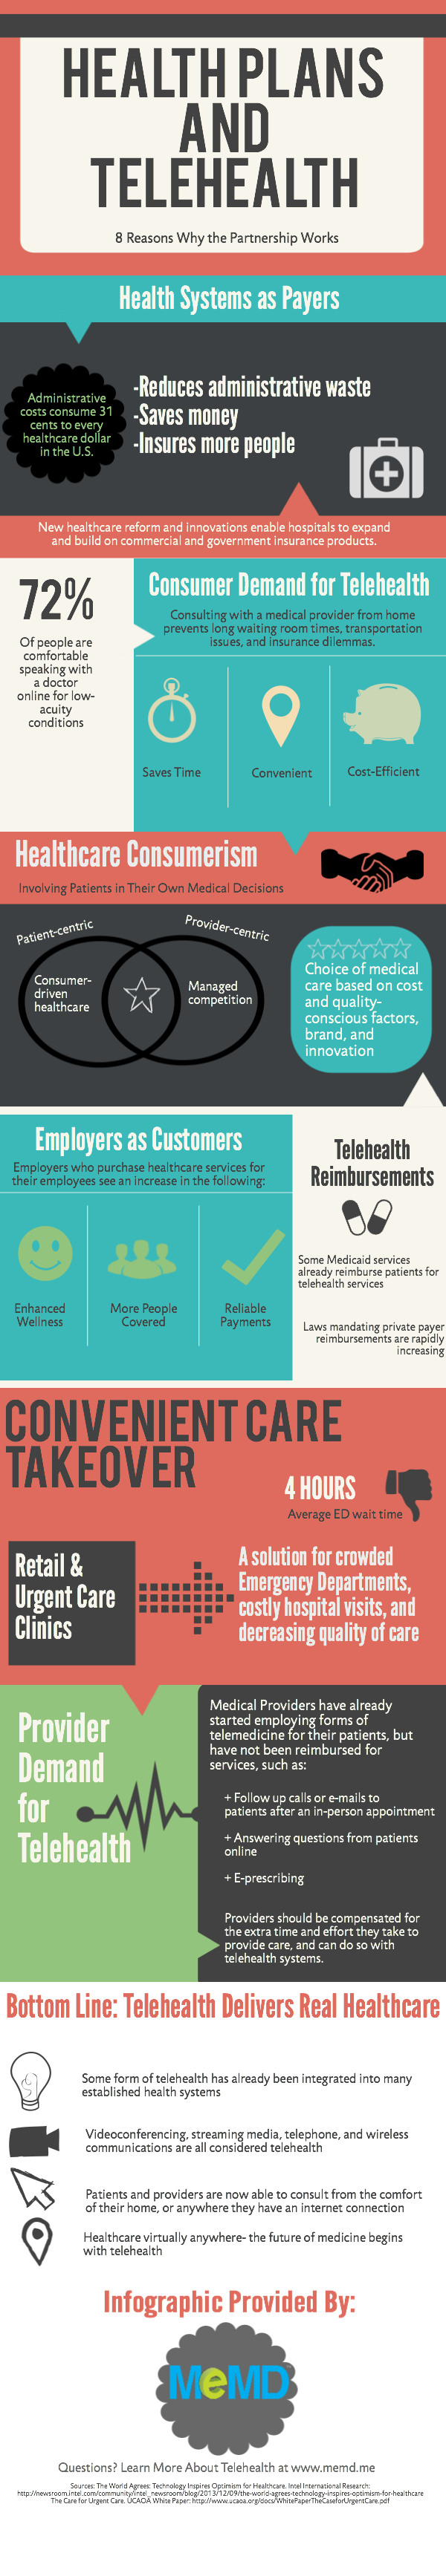 Telehealth Market Facts